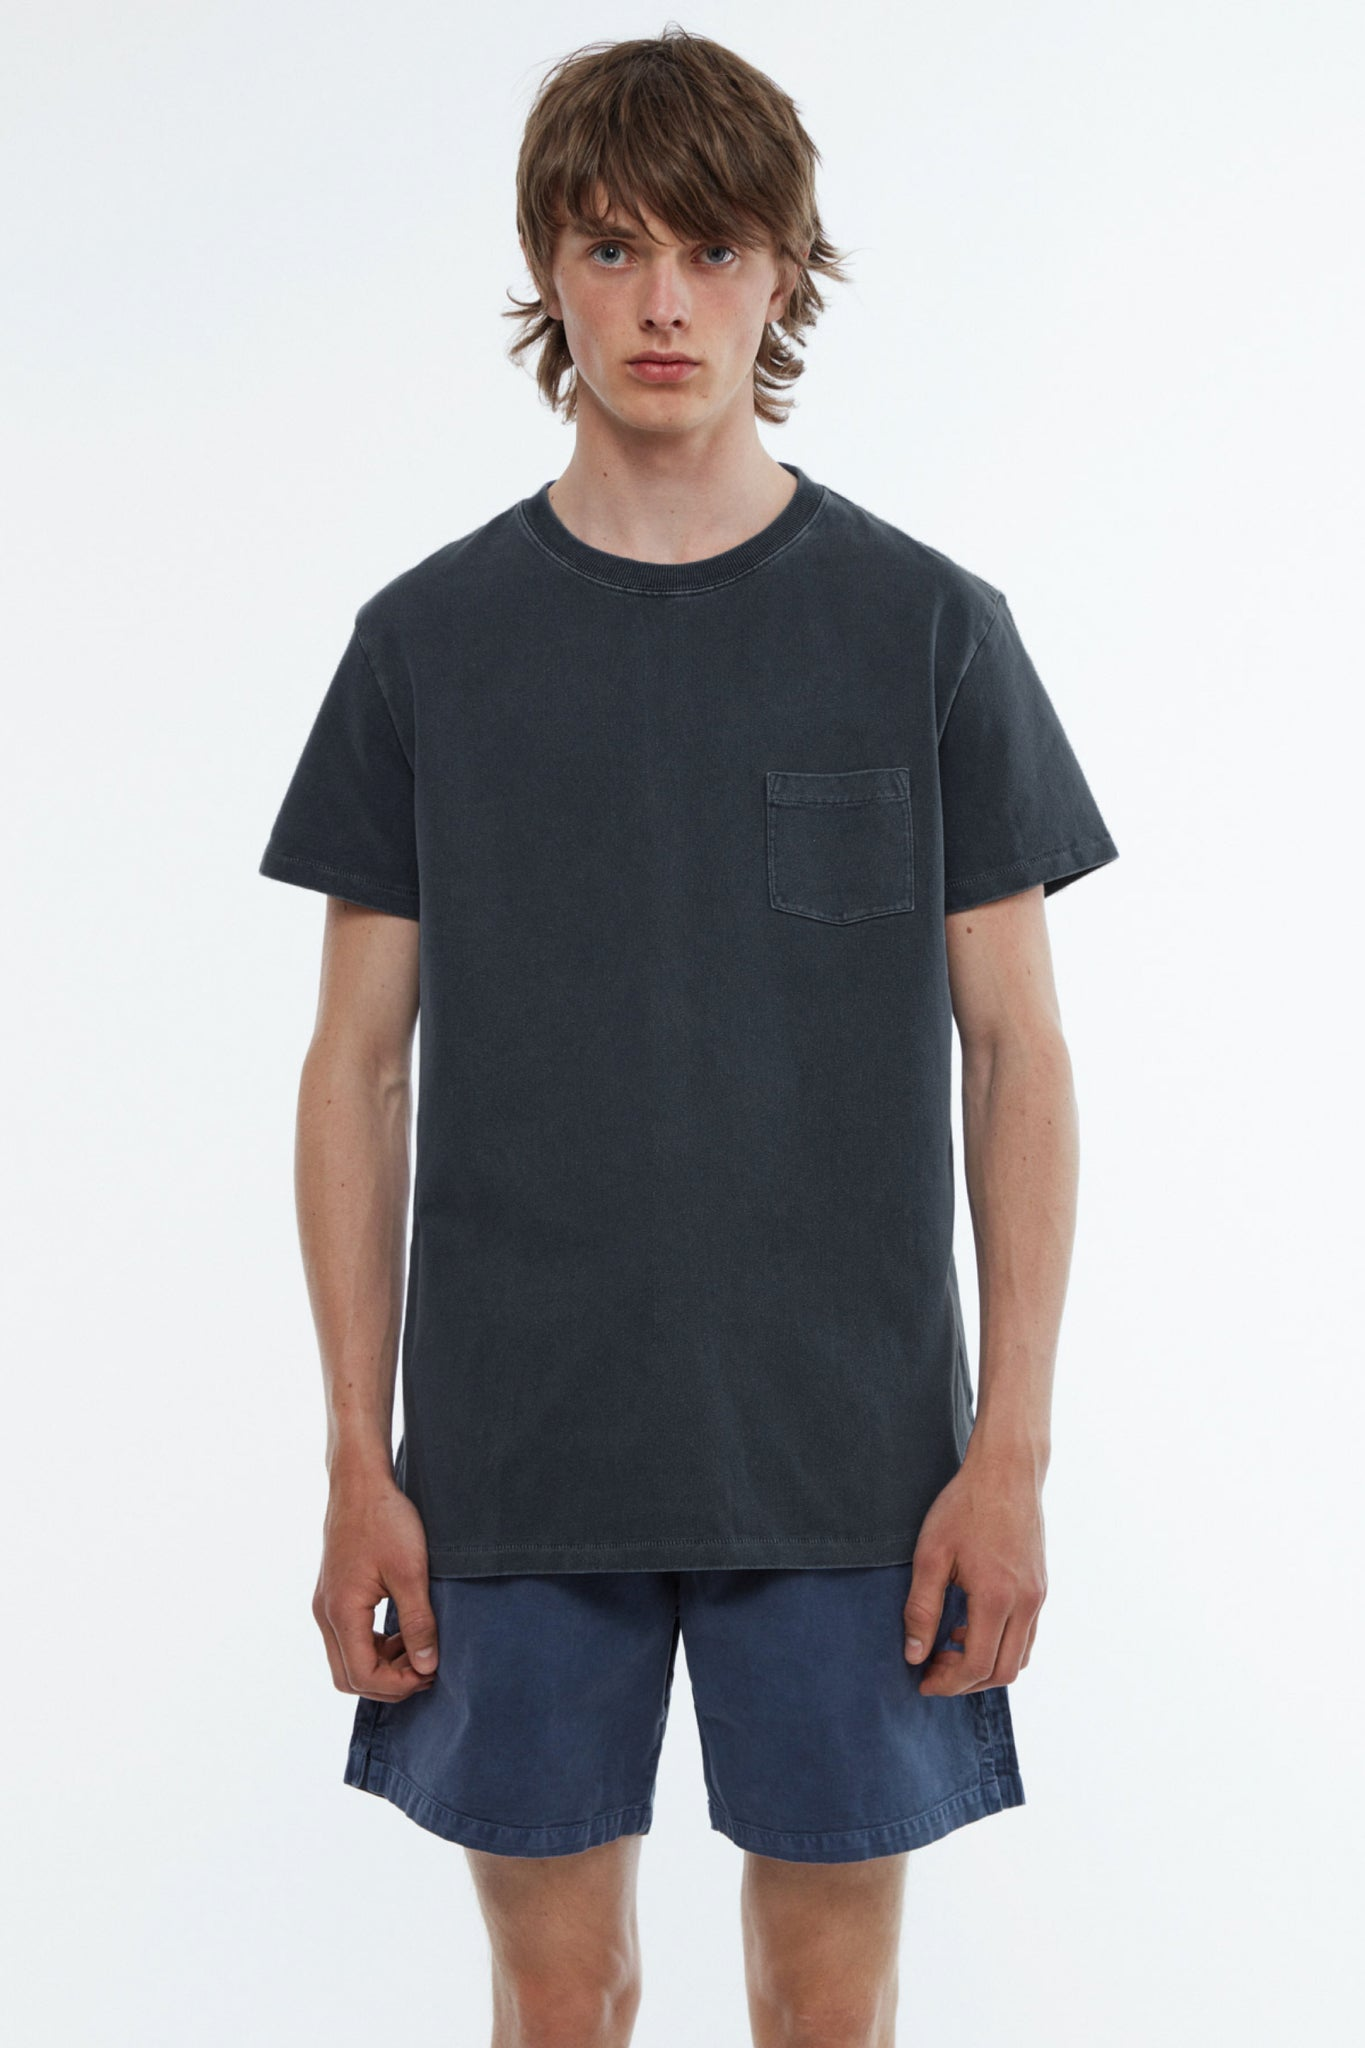 T-shirt jersey garment dyed black